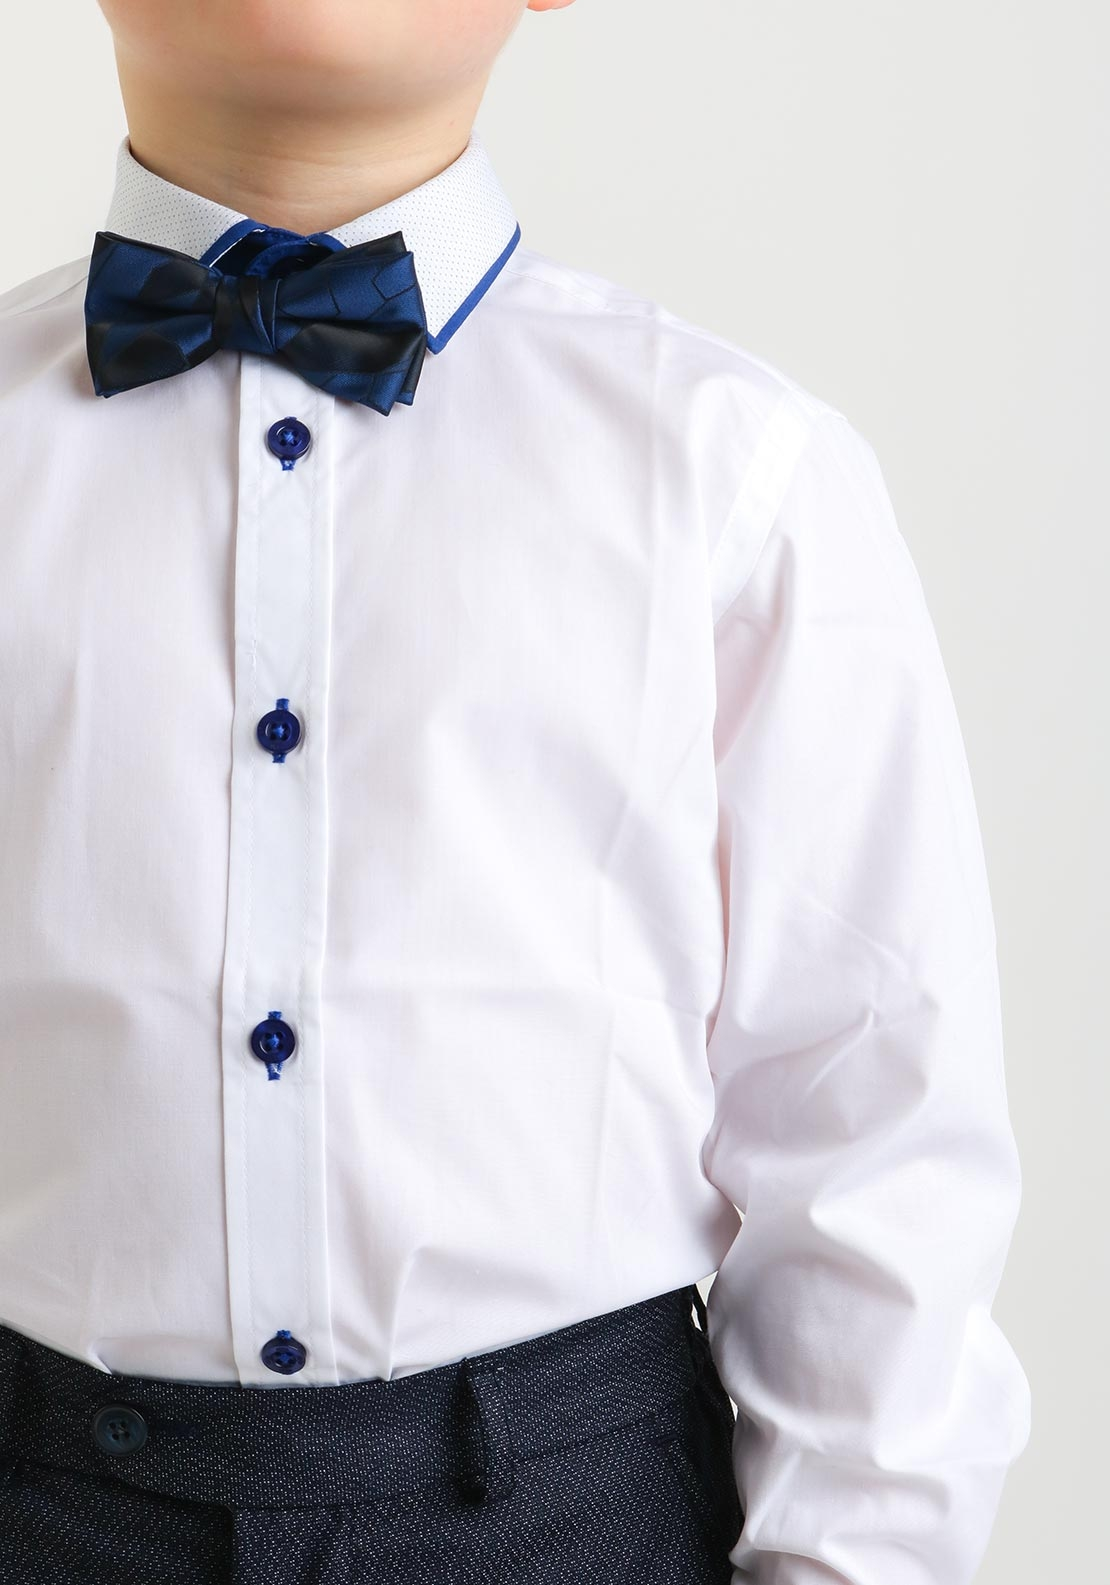 1880 Club Contrast Navy Trim Shirt and Bow Tie, White